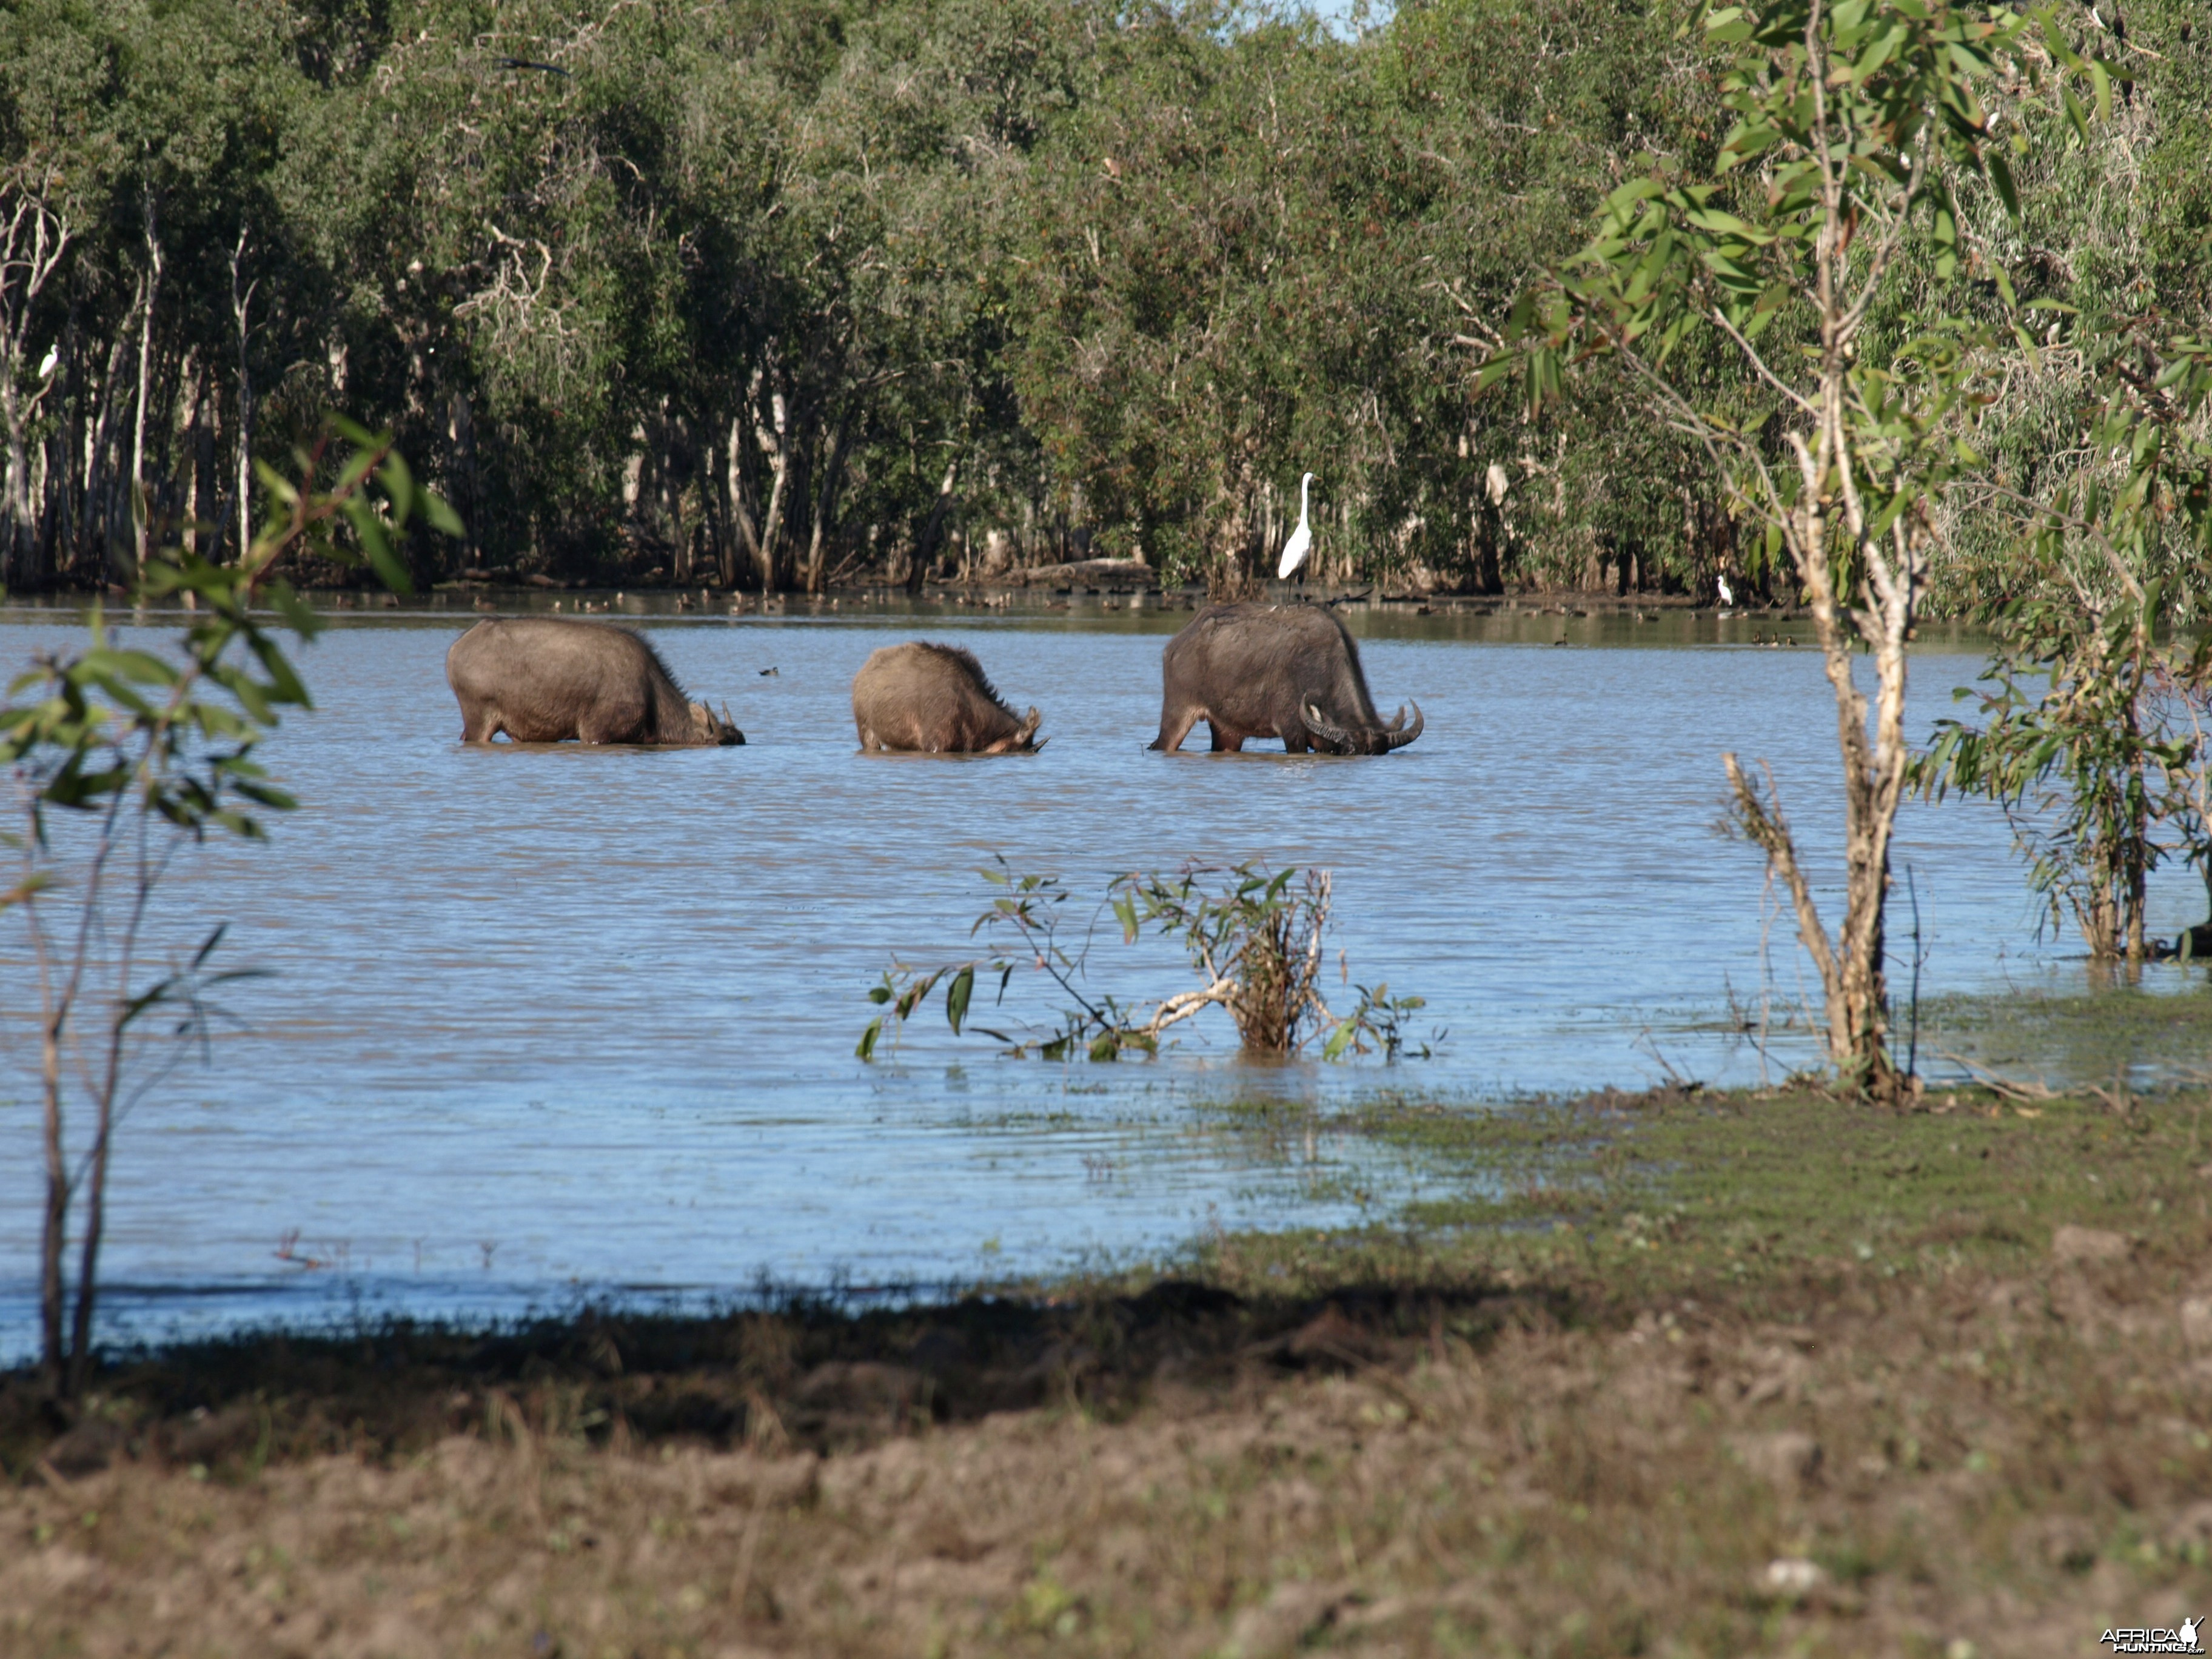 Arnhemland scenery & wildlife.